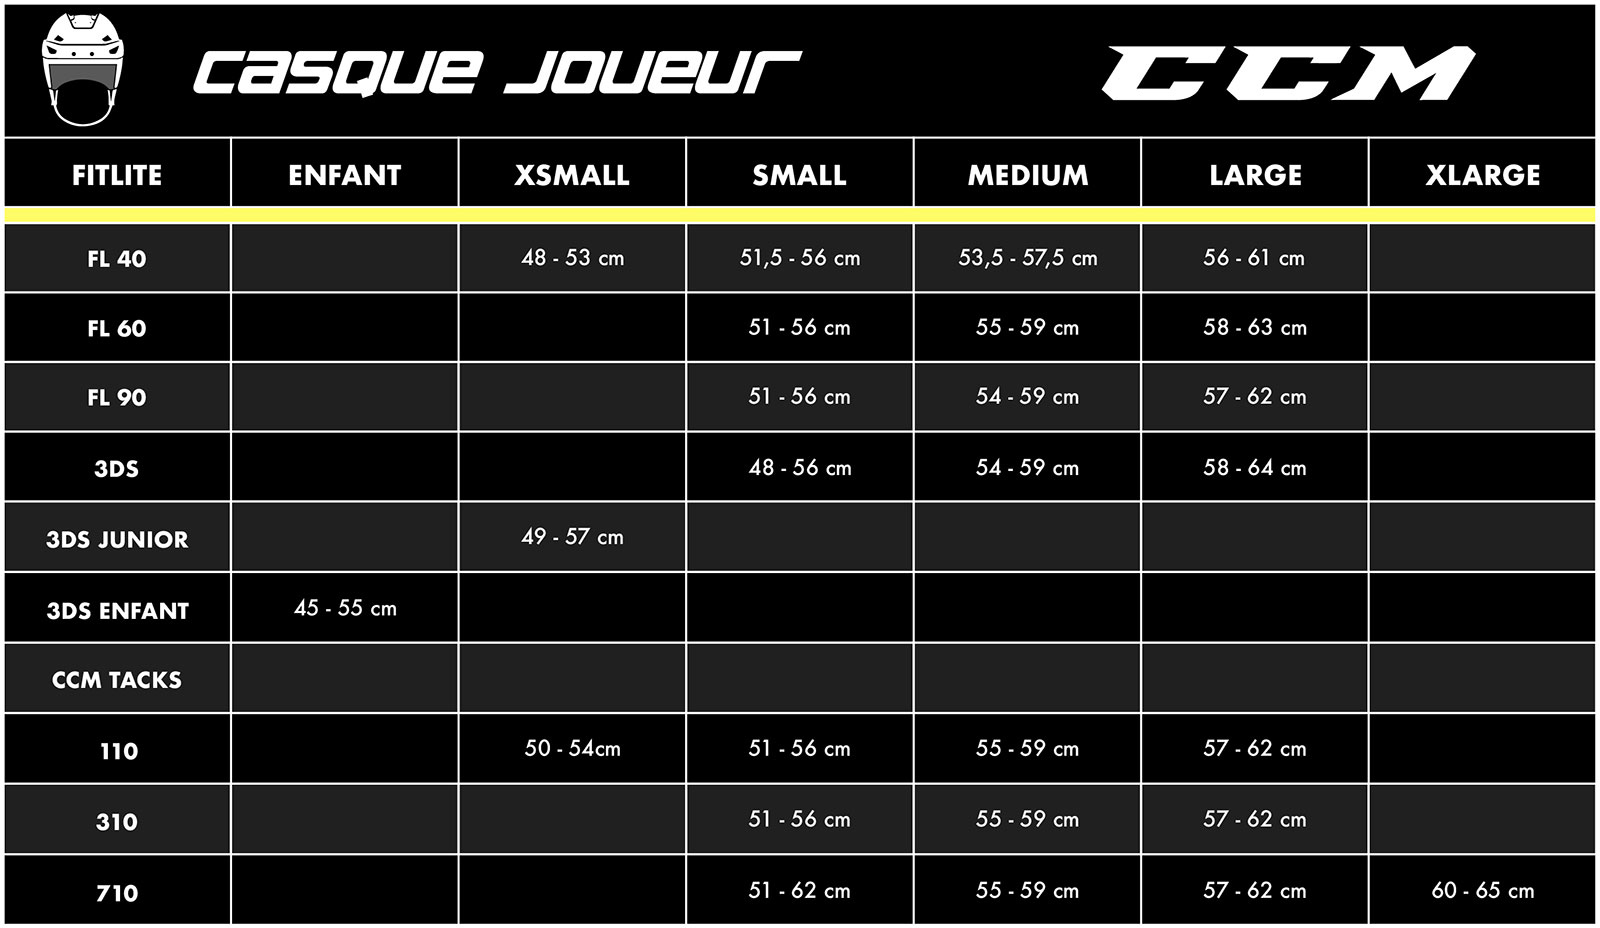 Guide de taille casque CCM hockey Pro Patinage